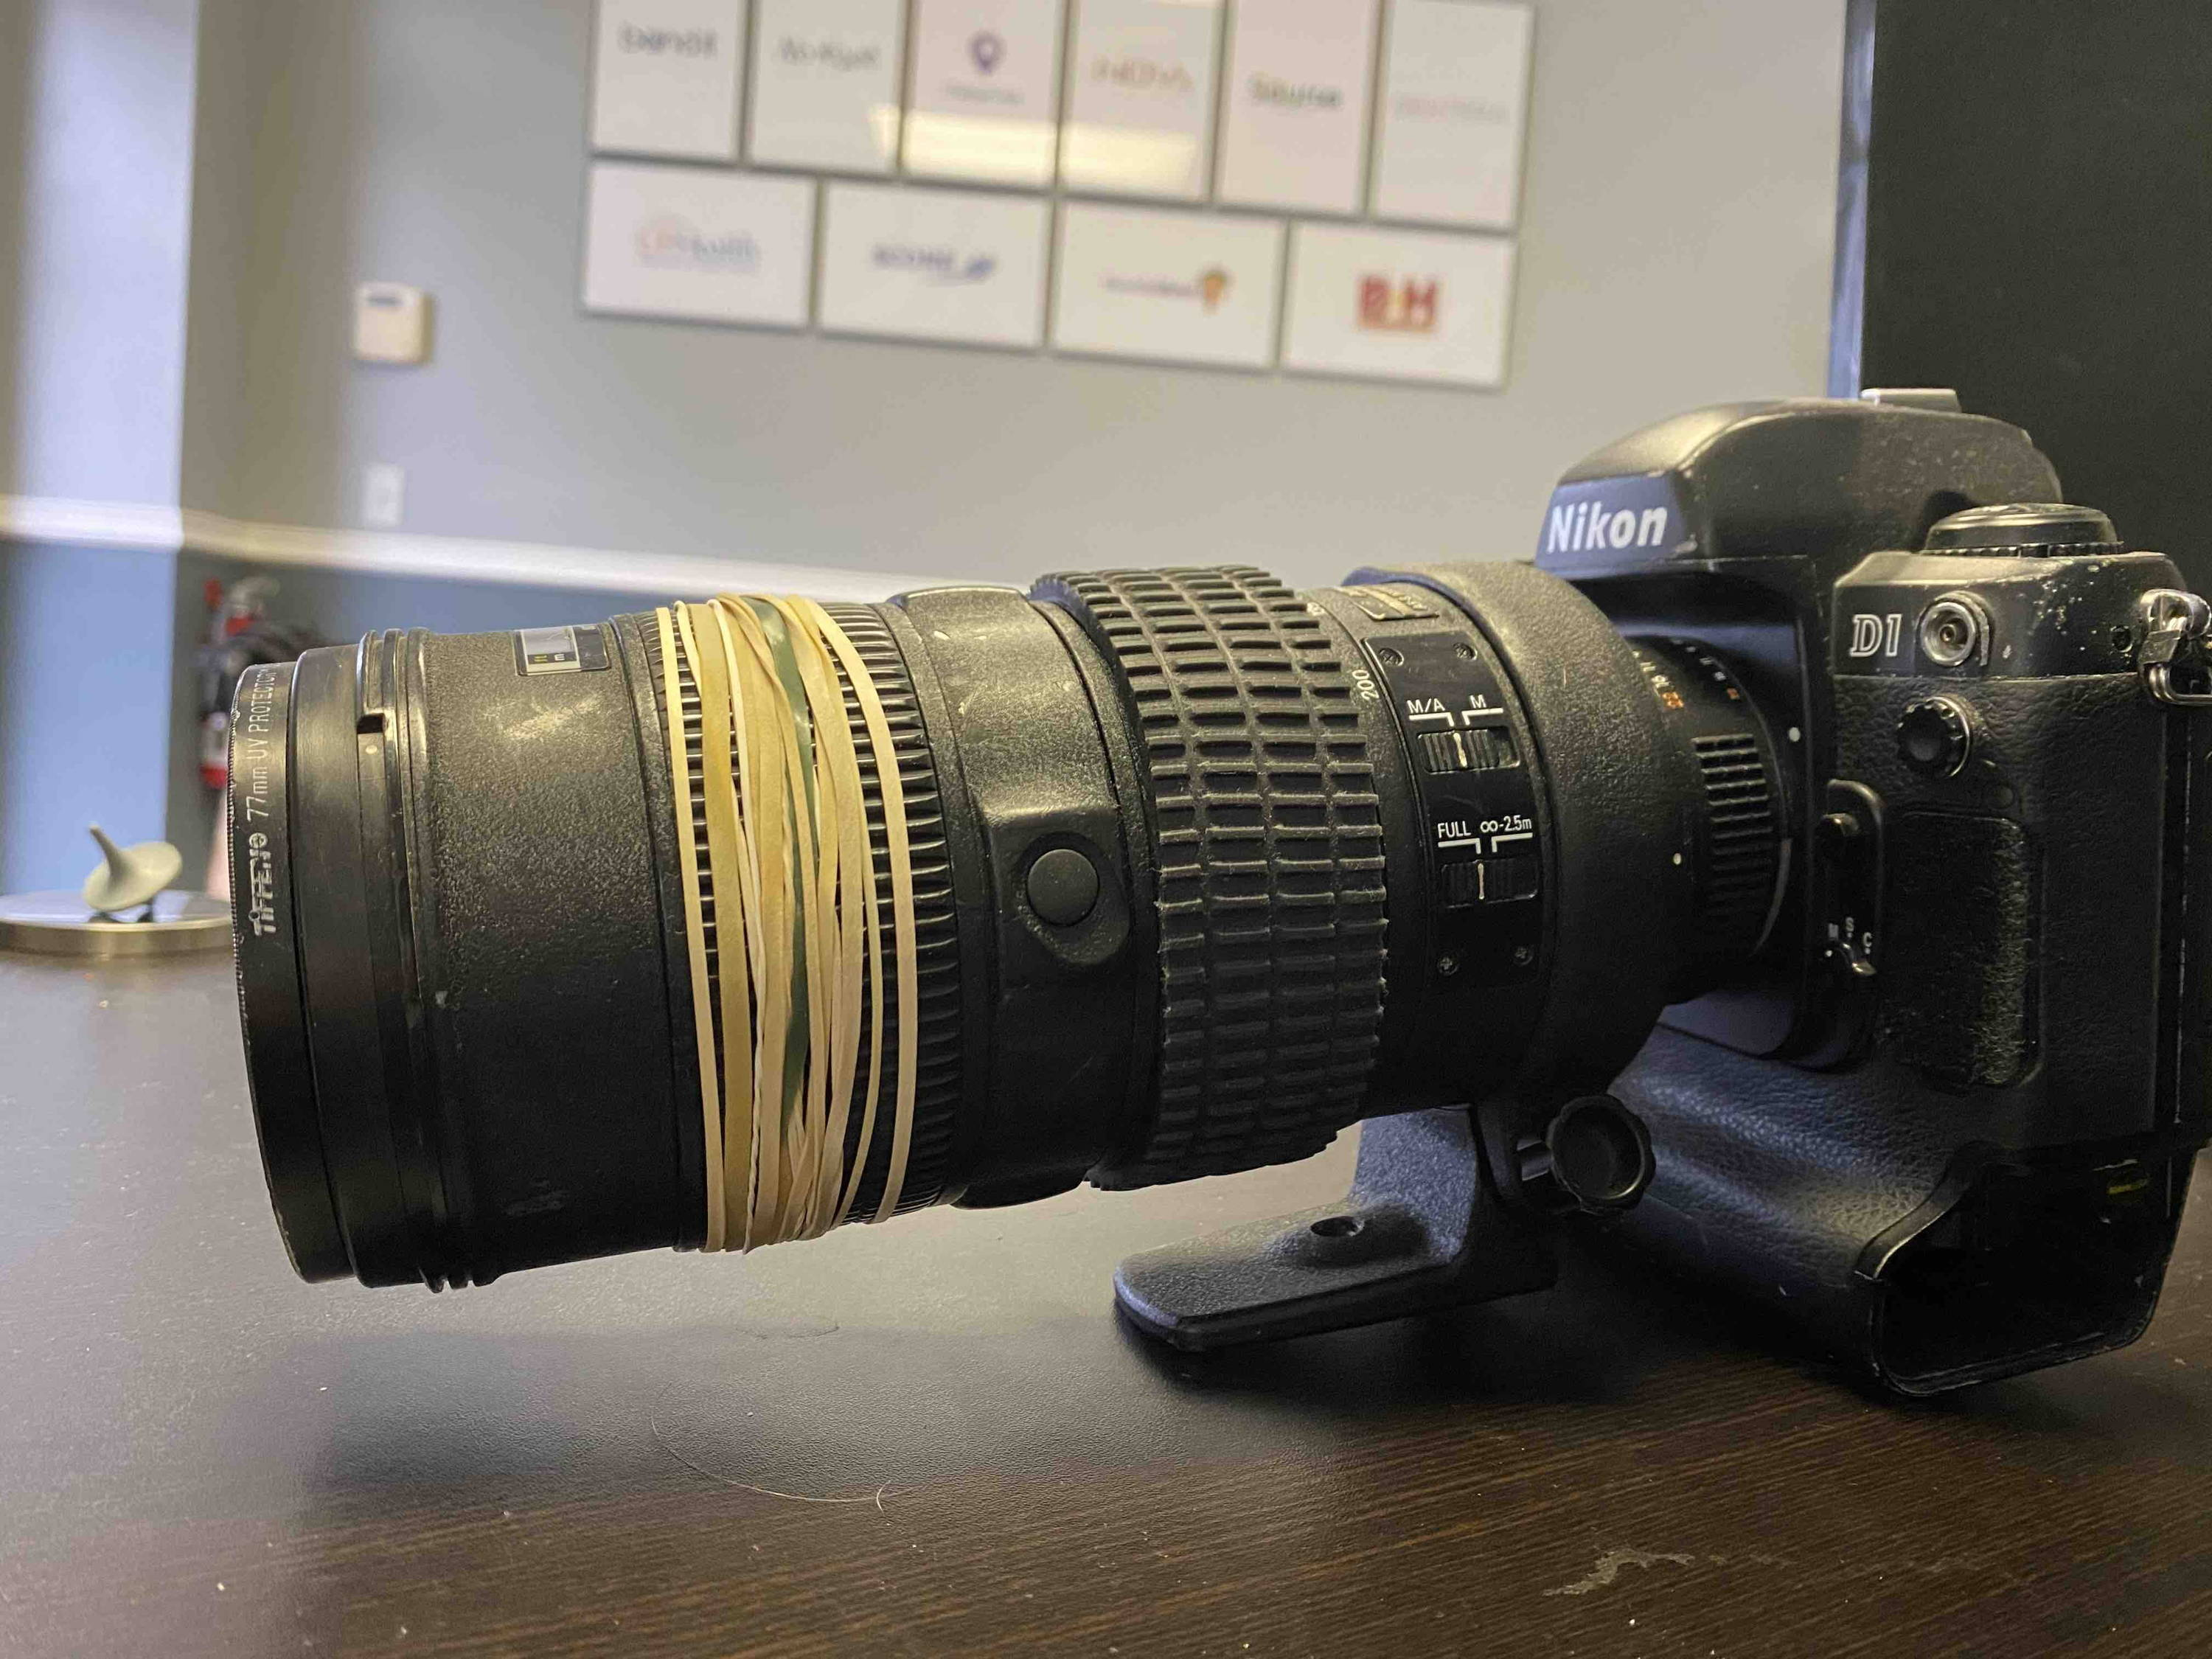 rubber bands on a camera lens